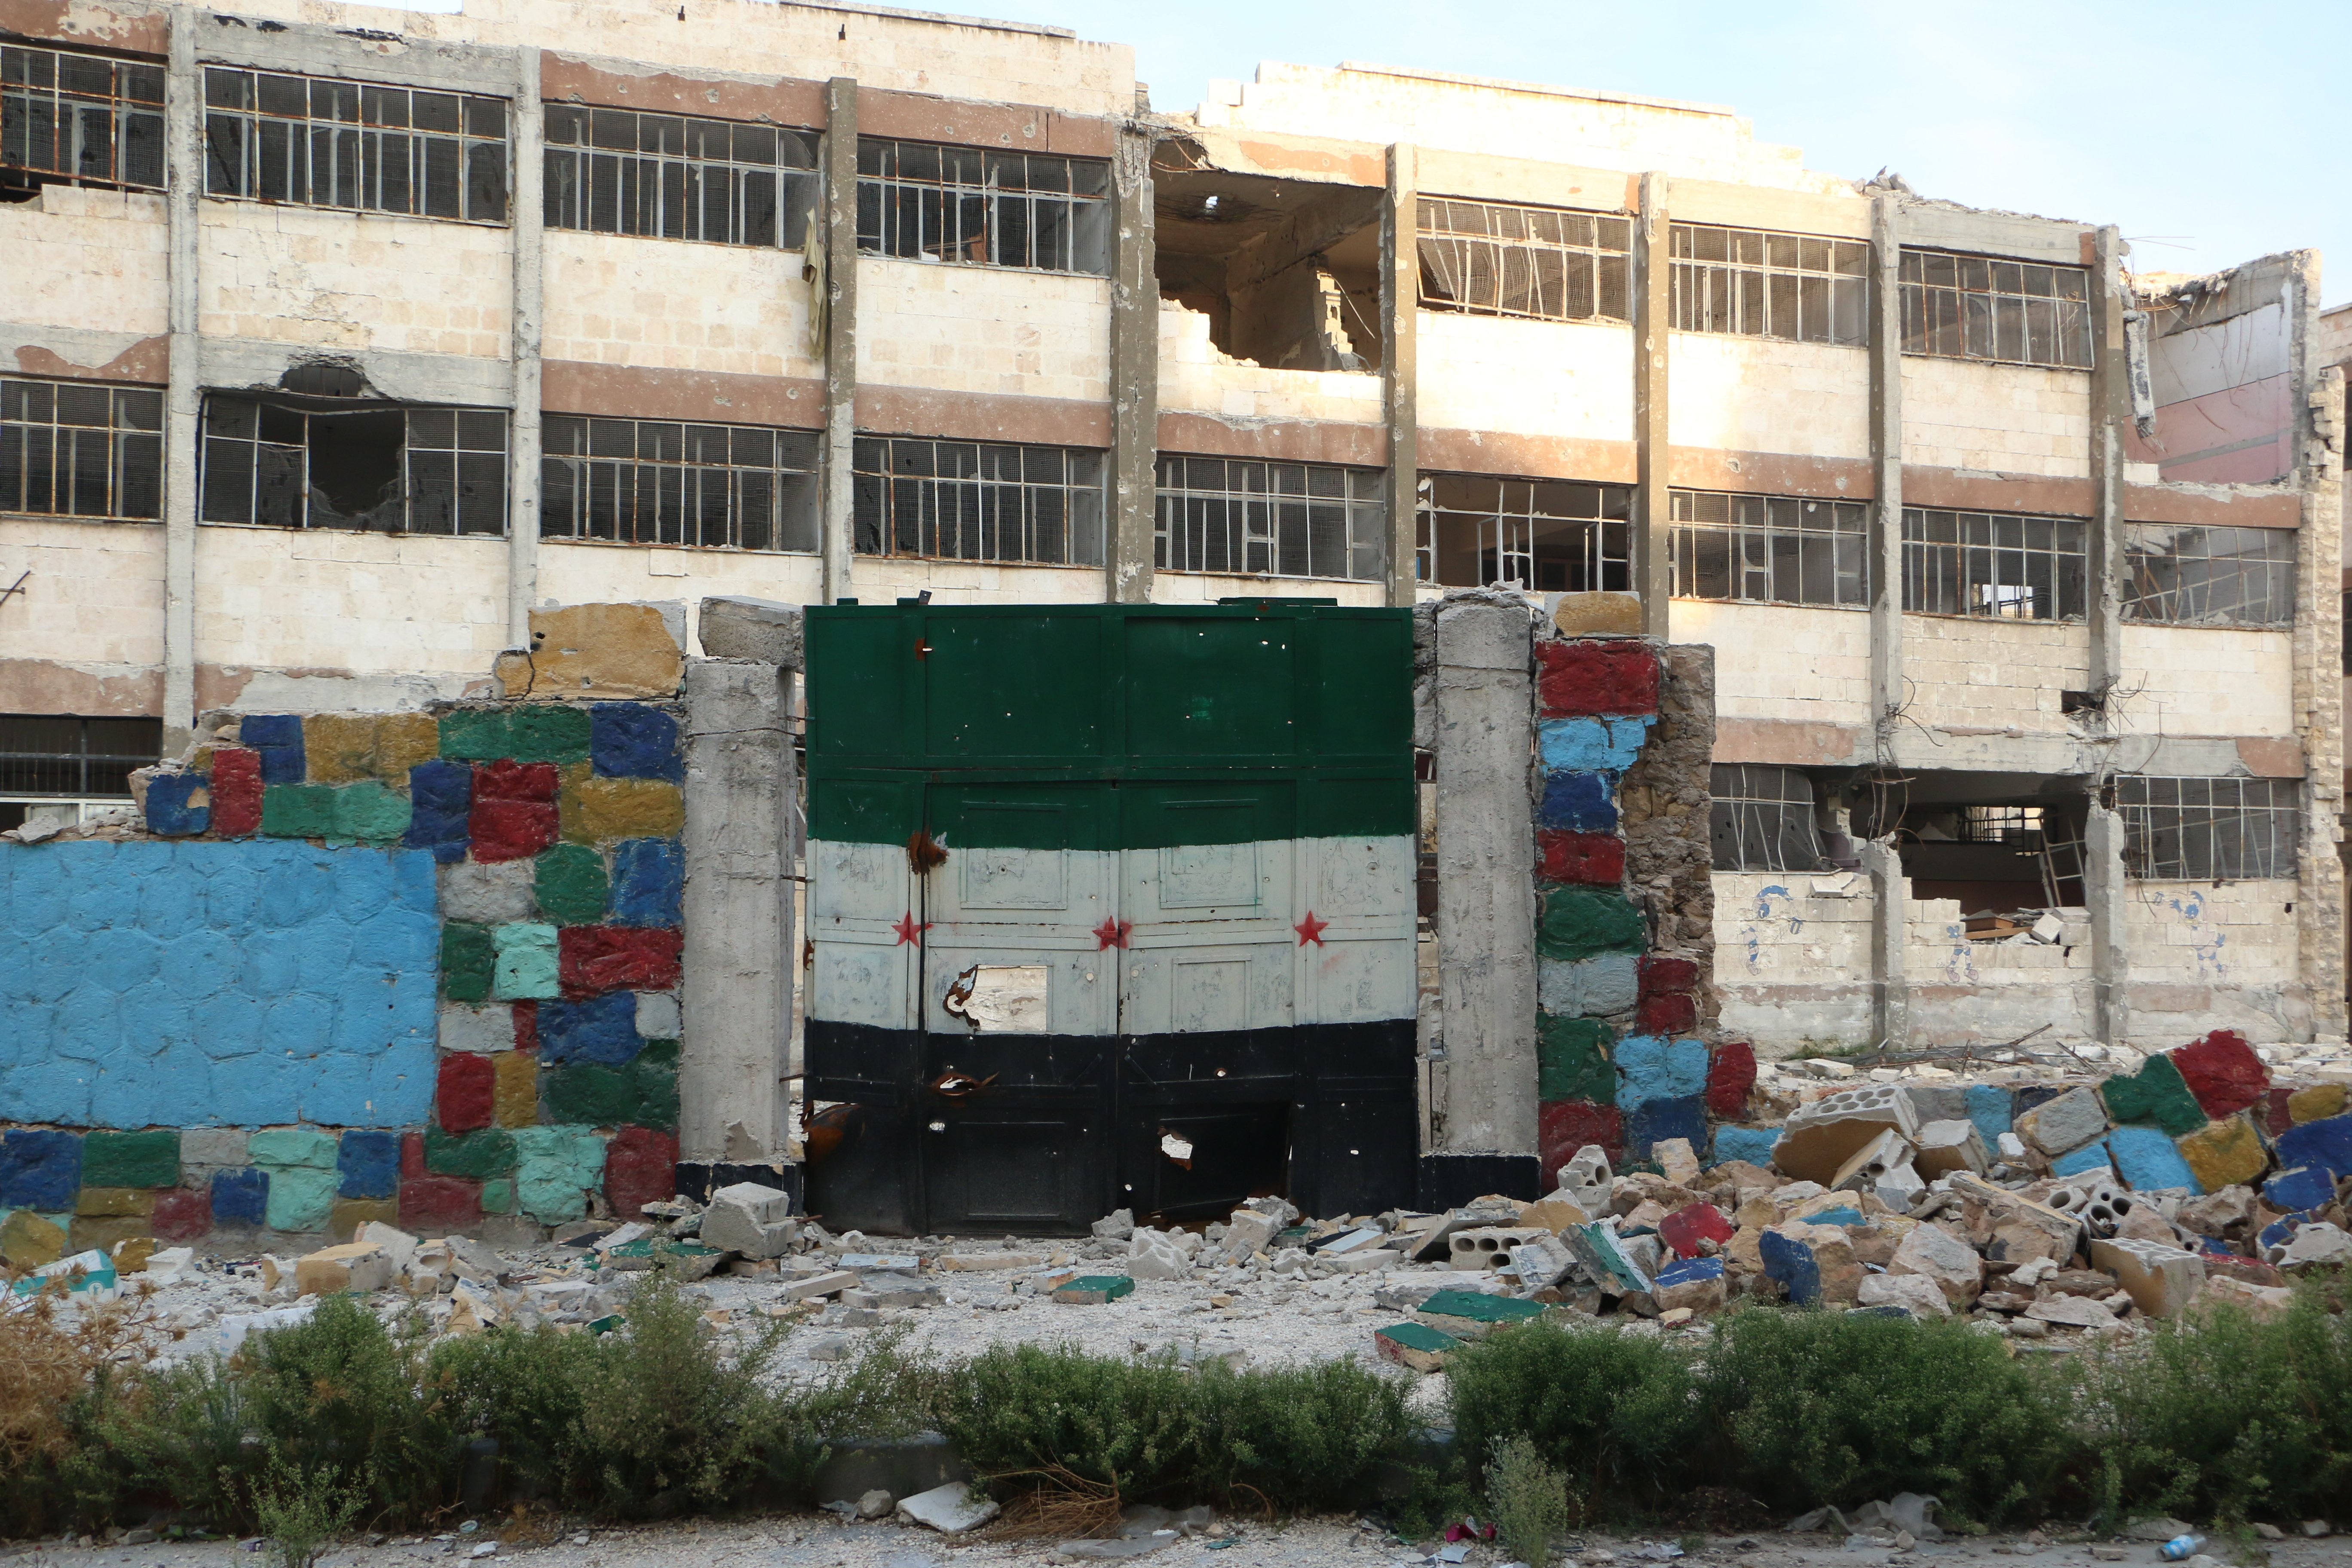 EDUCATION IN ALEPPO FROM DIVISION TO RECONCILIATION